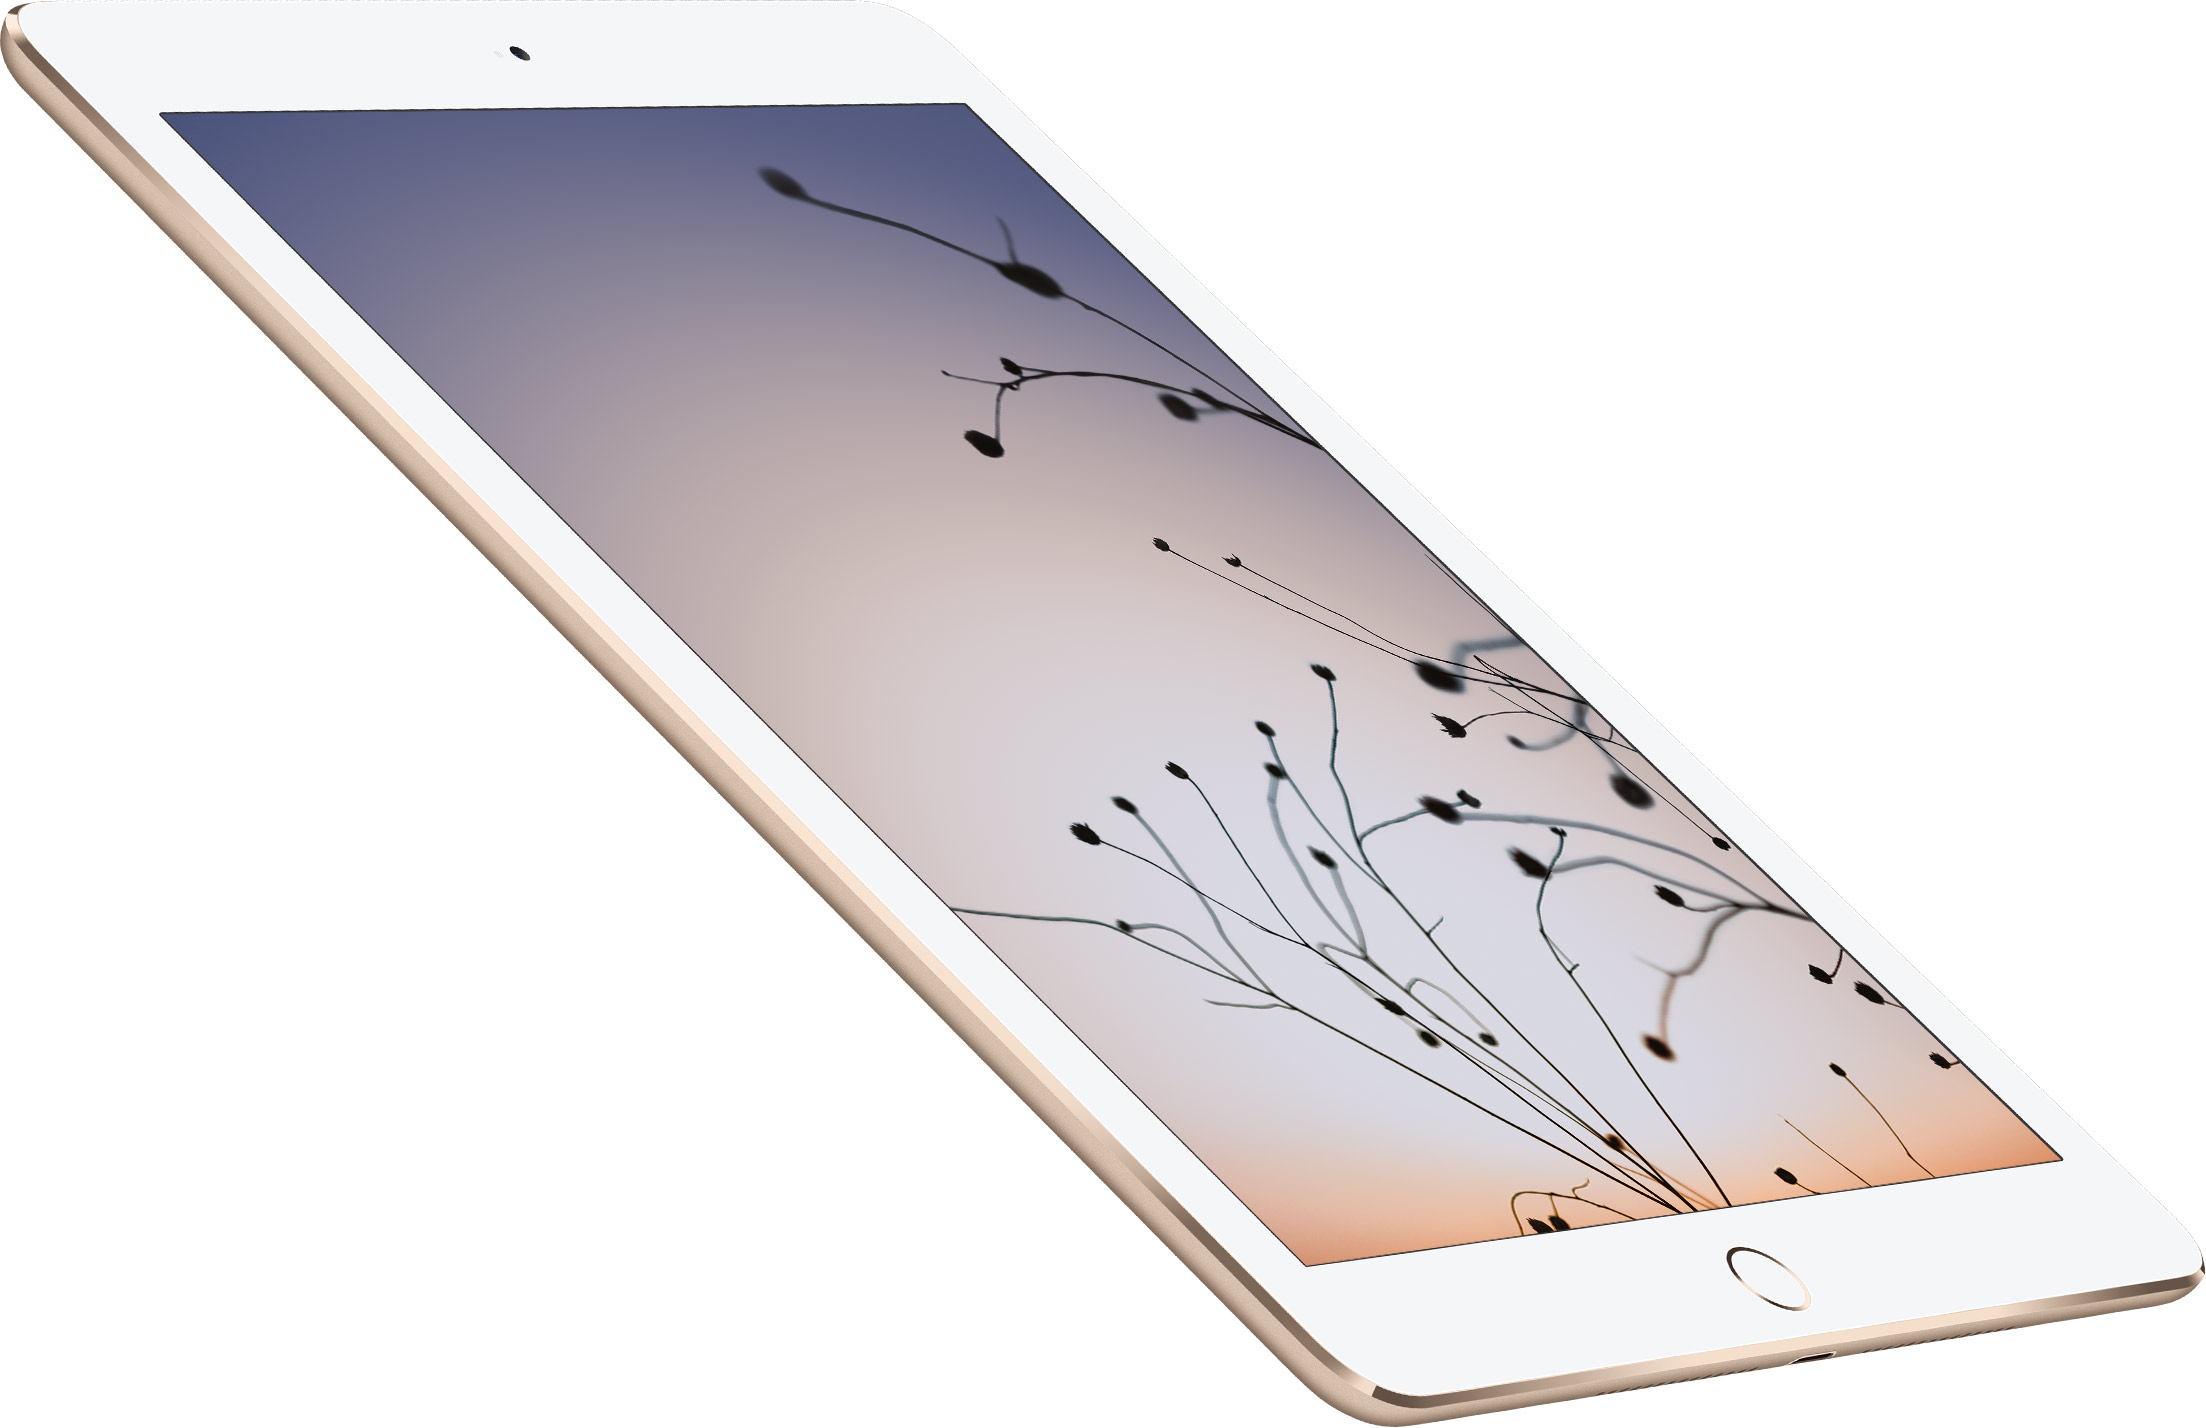 Apple iPad Air 2, Эппл Айпад Аир 2